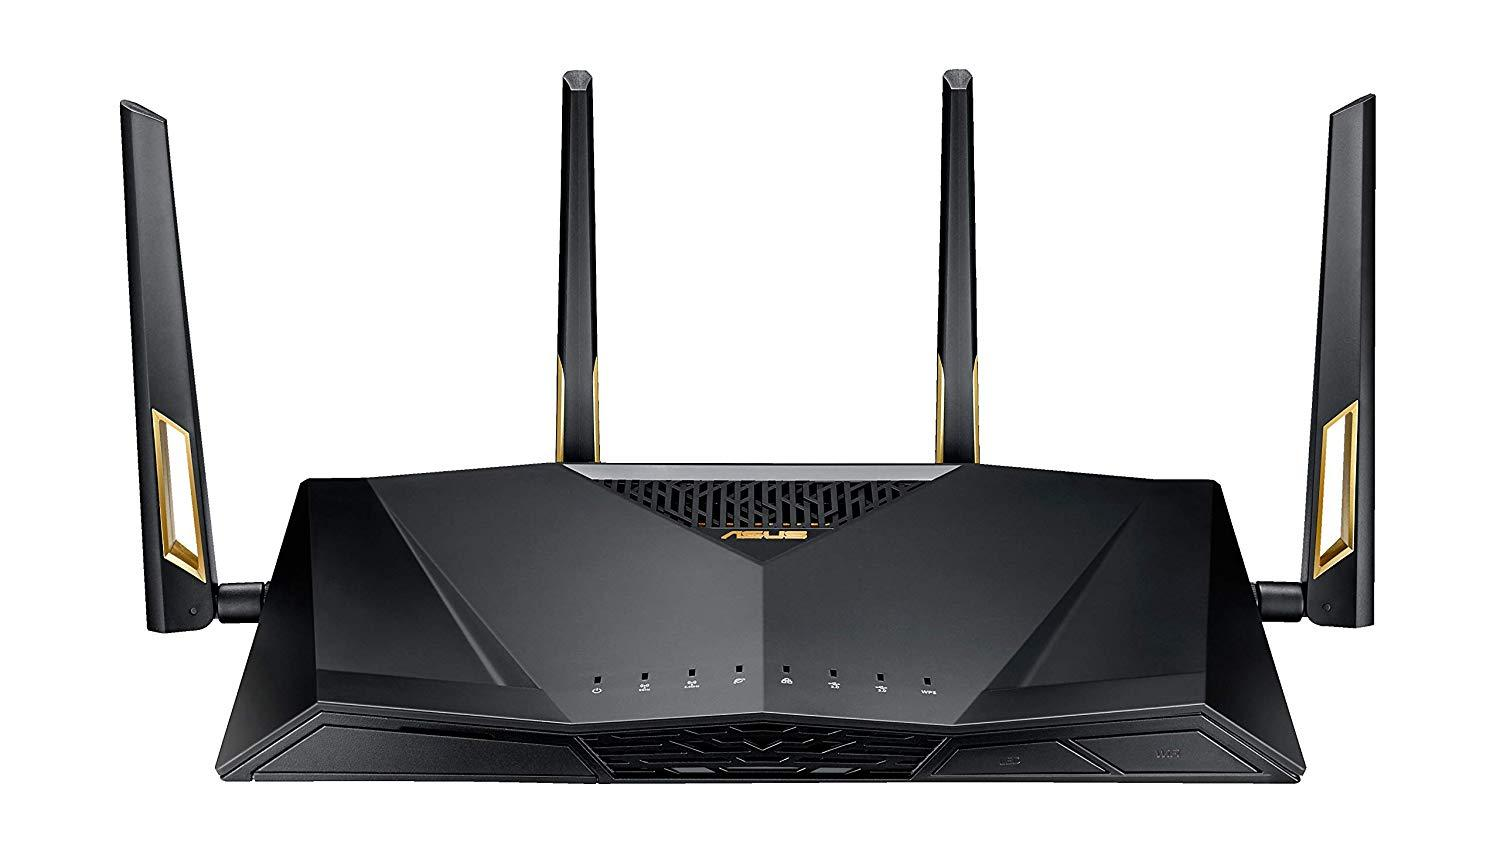 RT-AX88U mejores routers